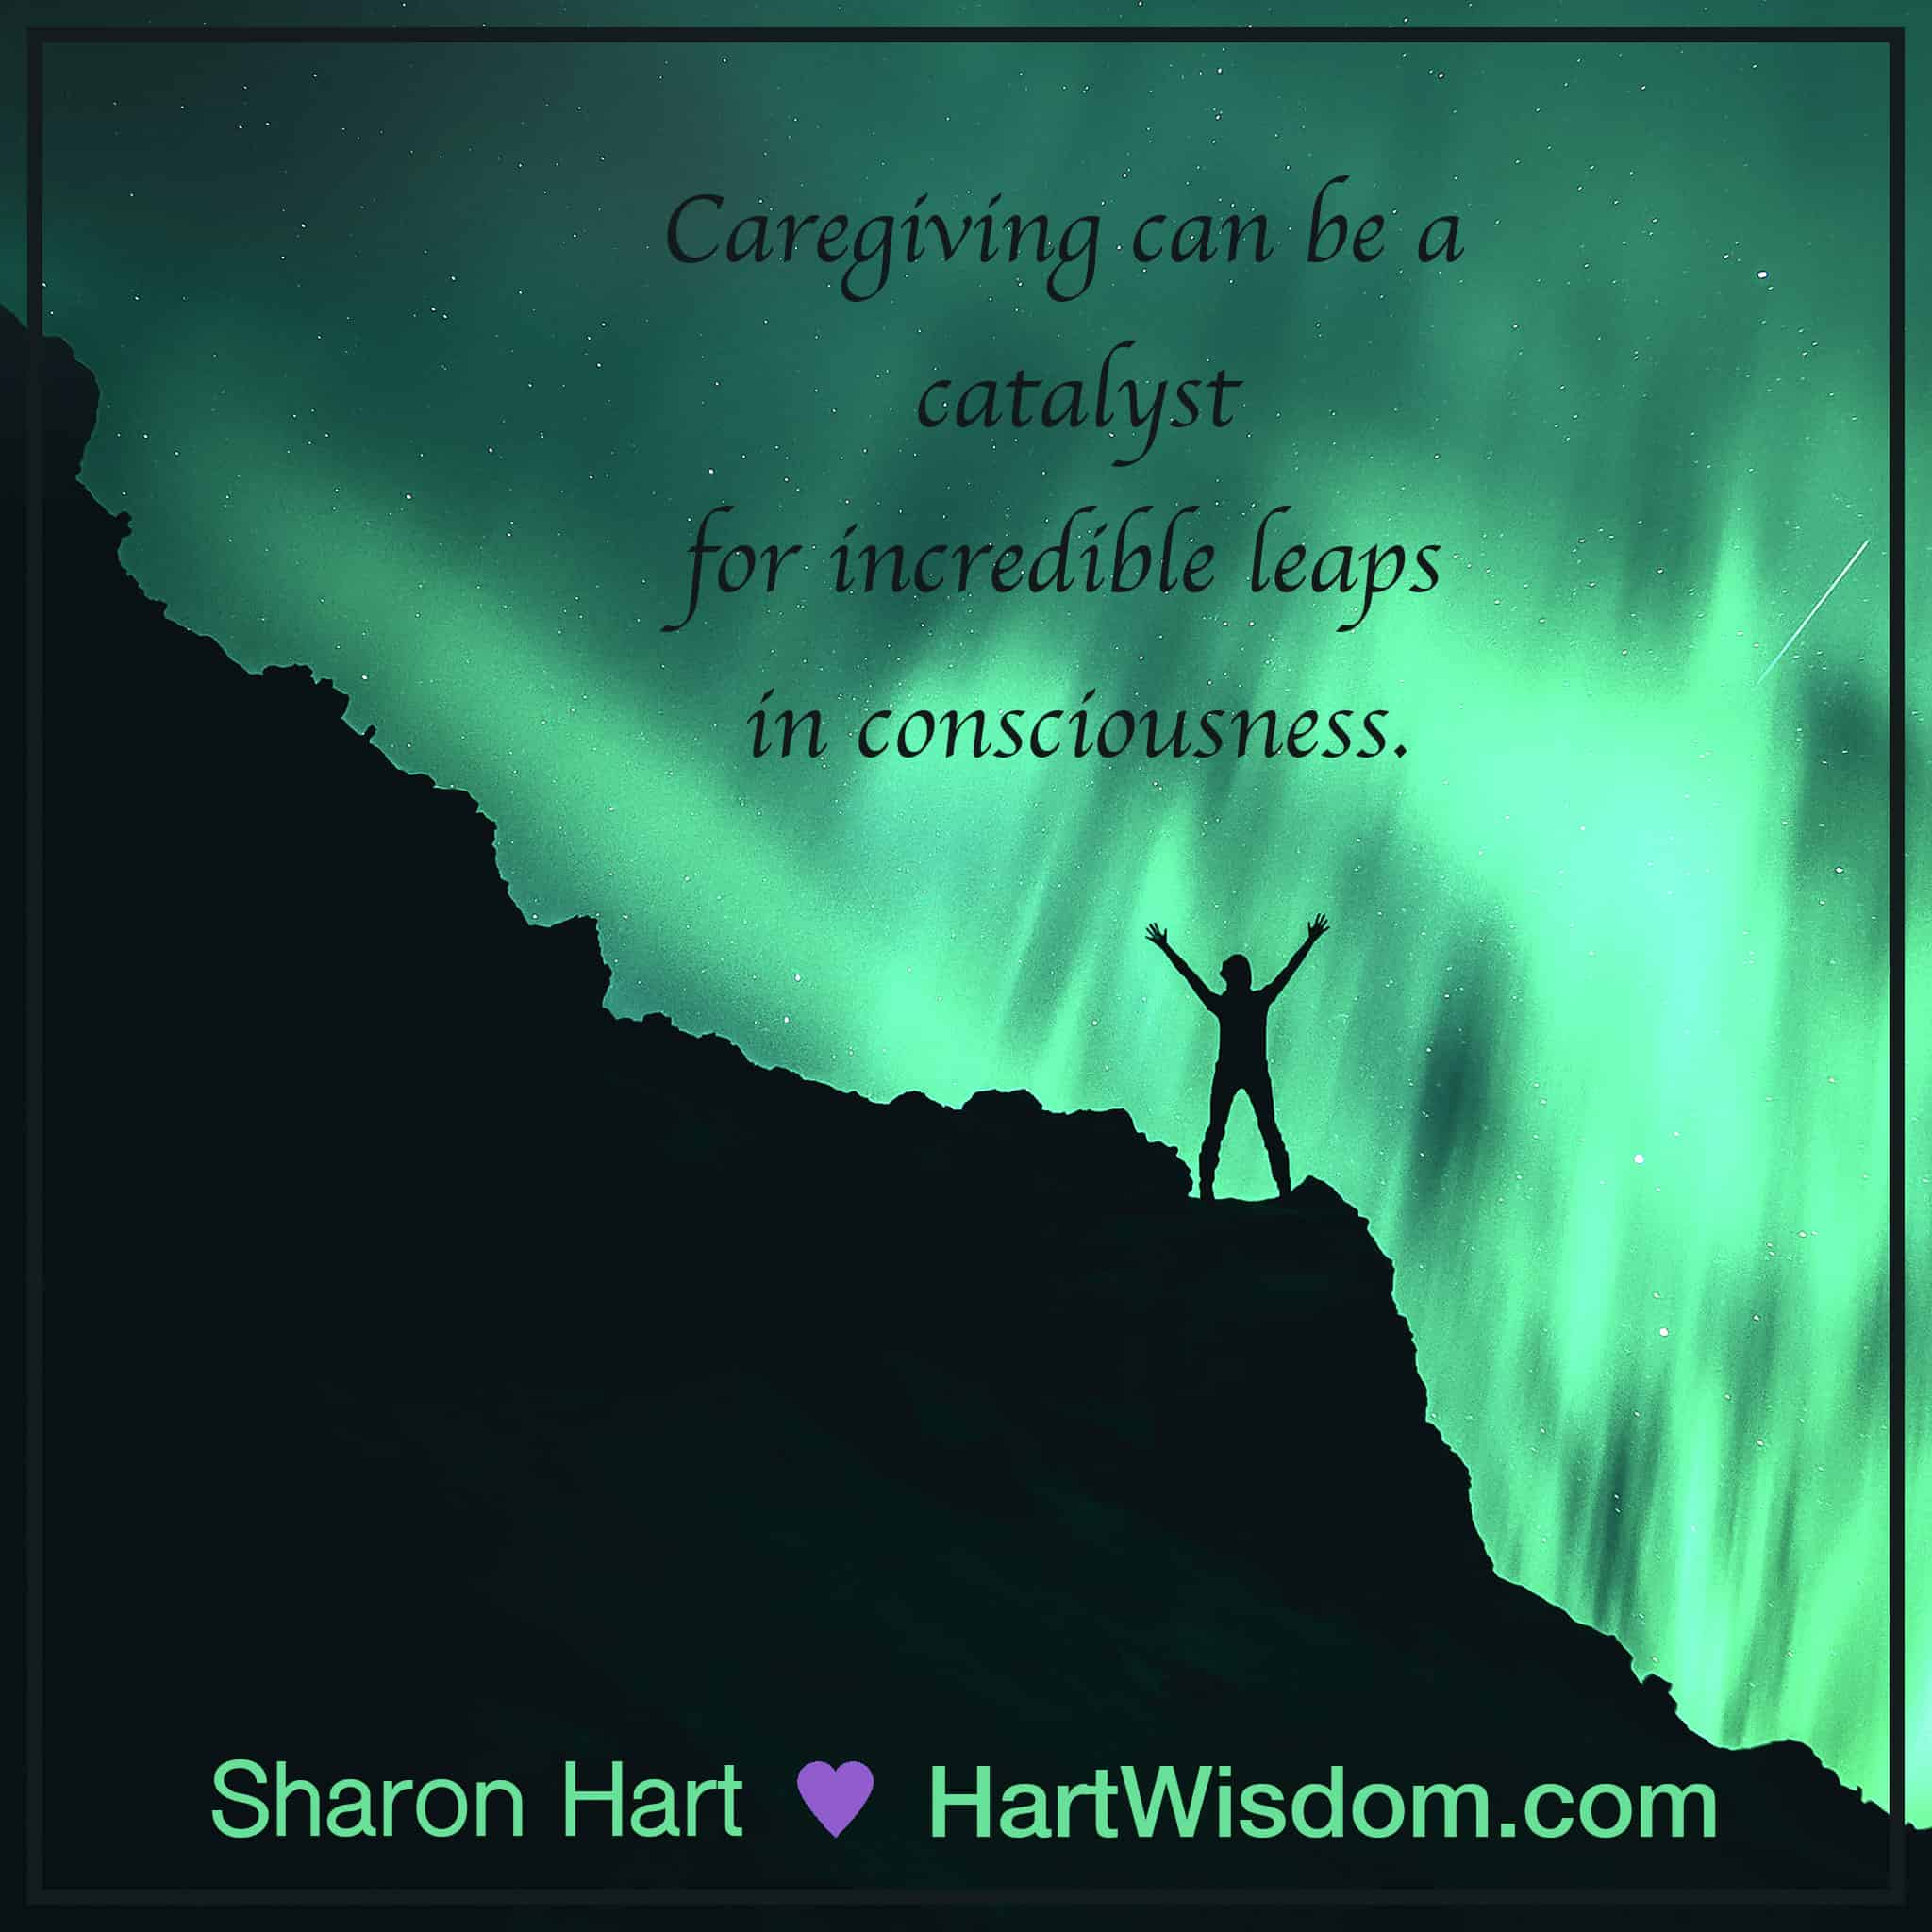 Sharon Hart Quotes Caregiving 2